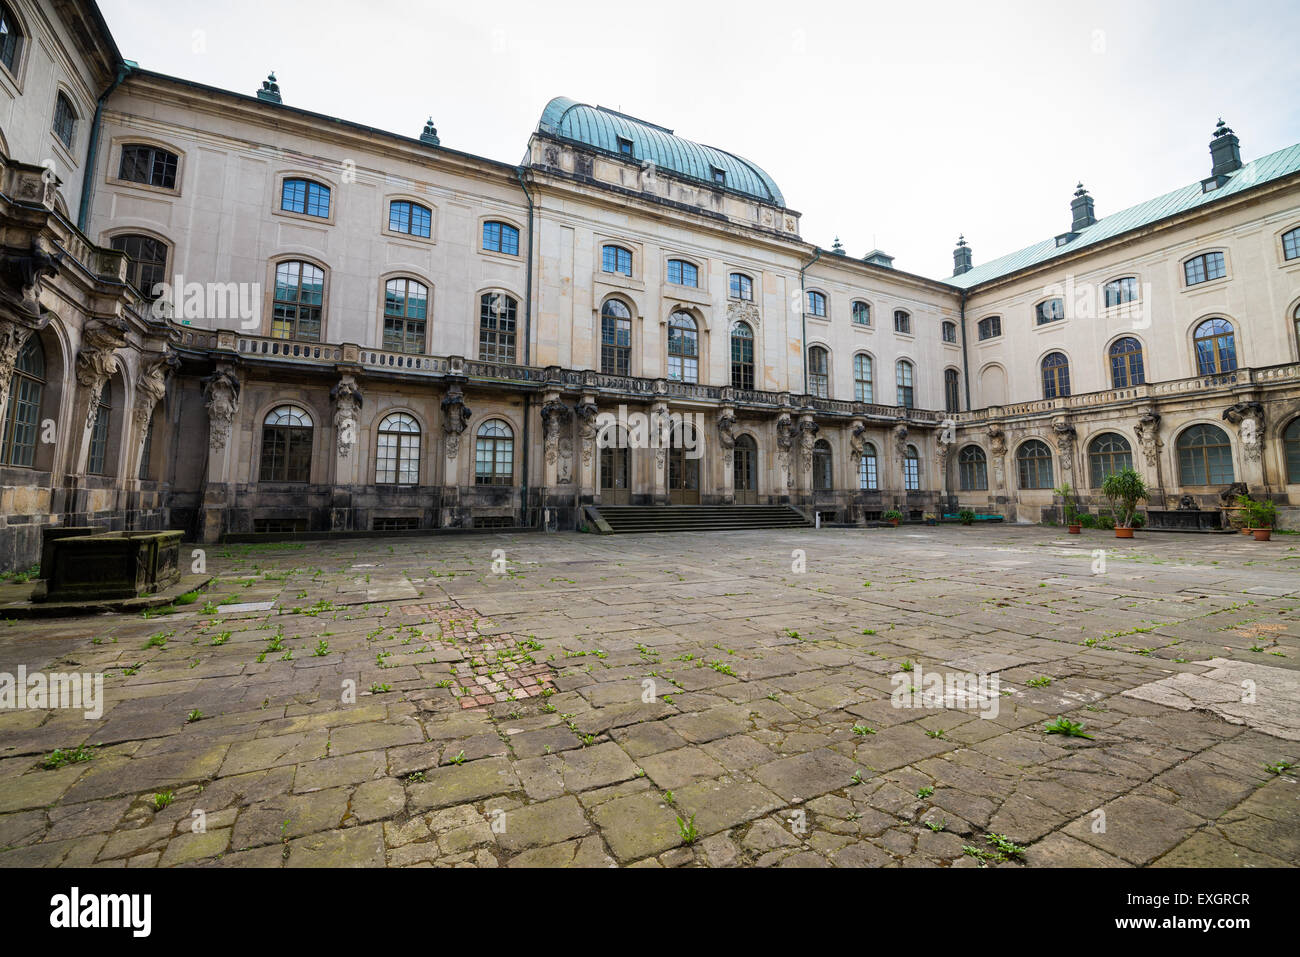 Japanisches Palais, Dresden, Saxonia, Germany, Europe - Stock Image